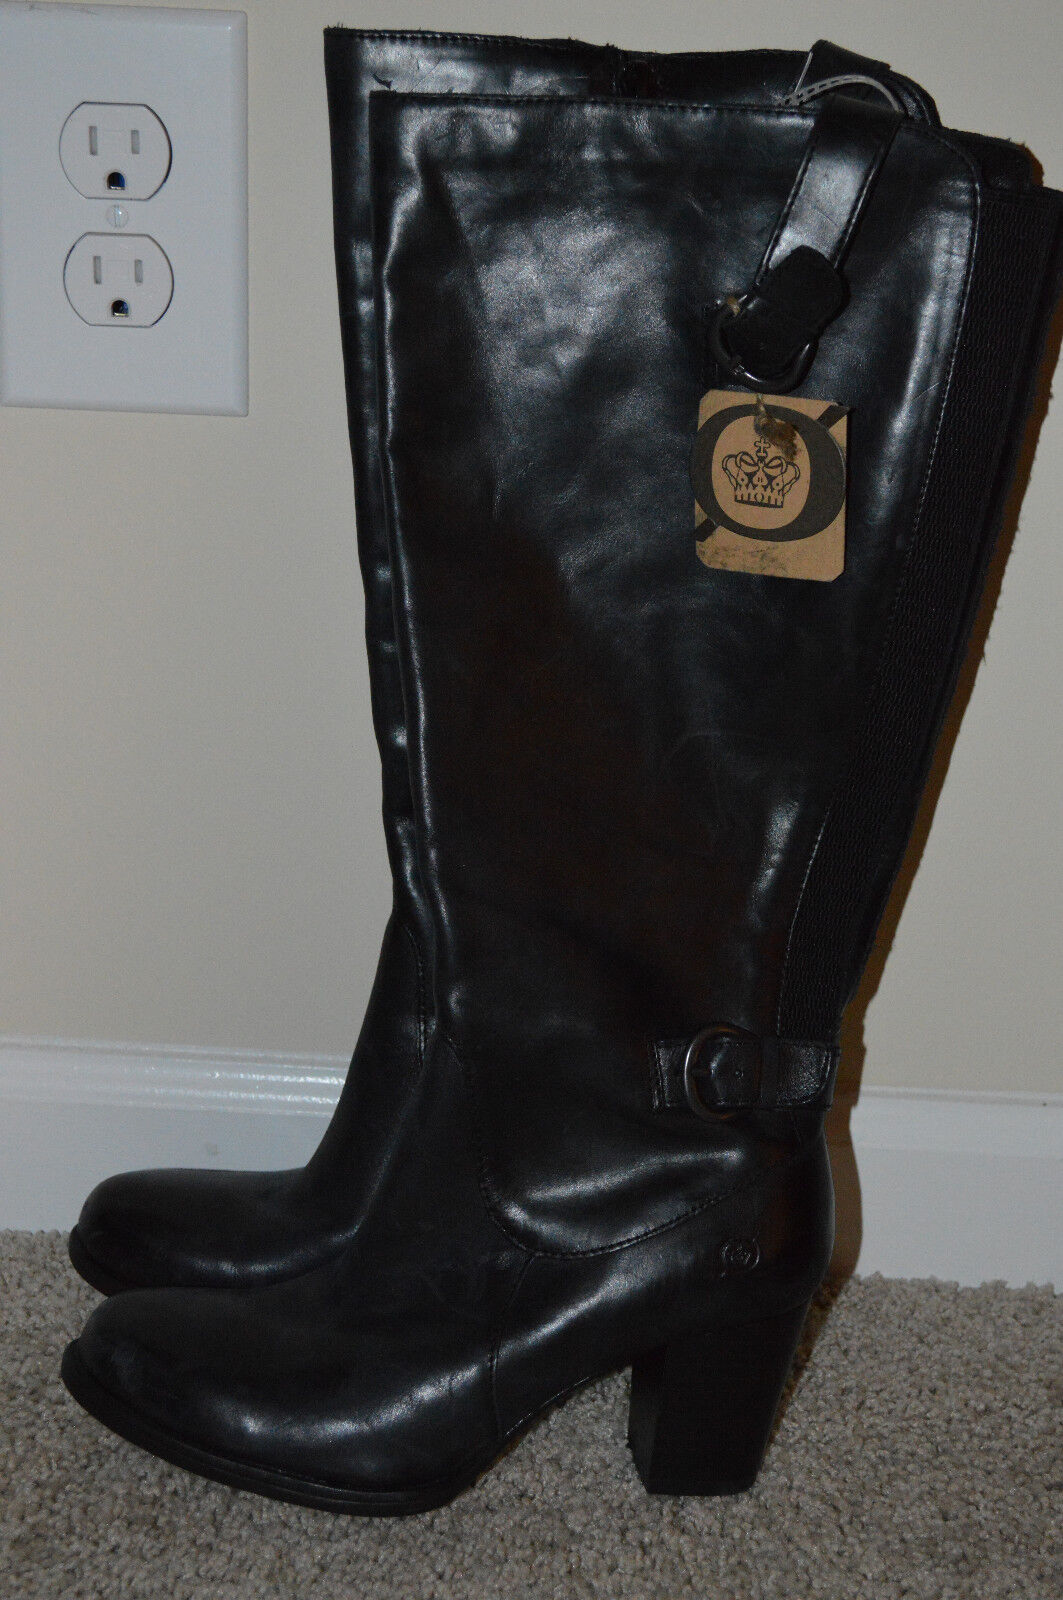 NEW Born Tall BOOTS Black shoes Pull-on 6 Leather  160 Wide Shaft Calf Heeled